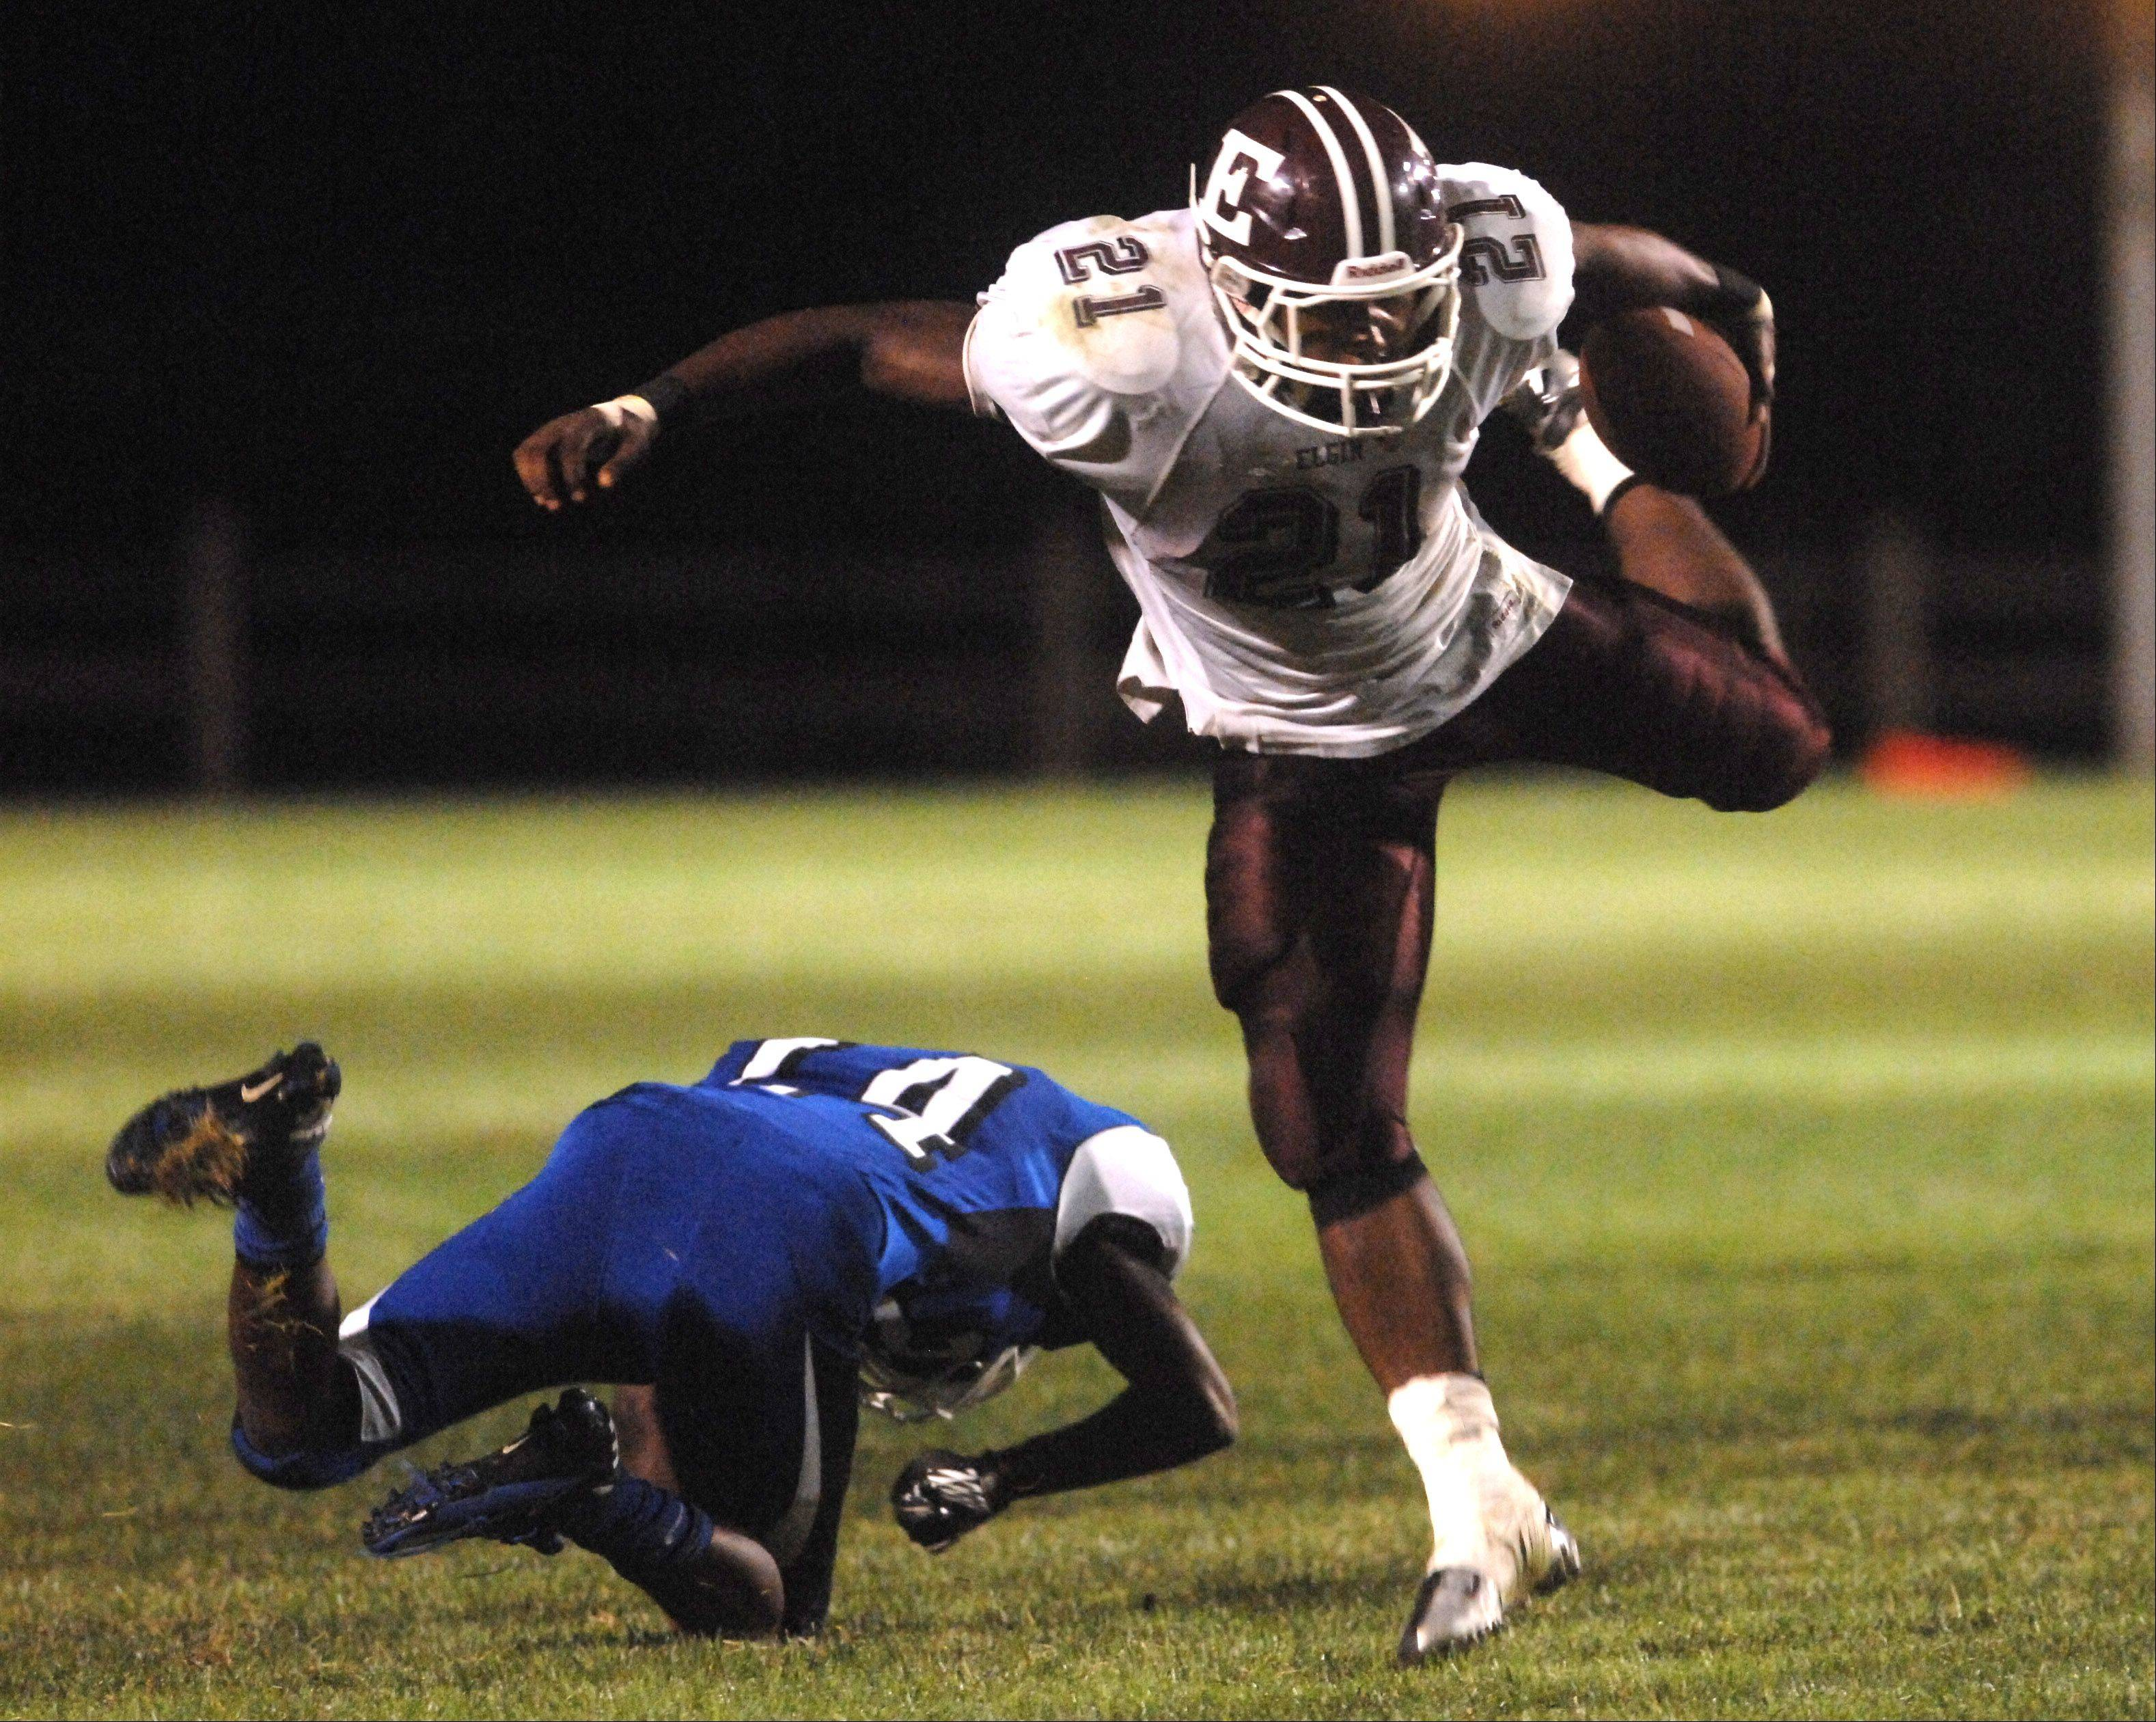 Elgin's Jaylen Clemons, 21, makes a big run during Friday's game against Larkin in Elgin.